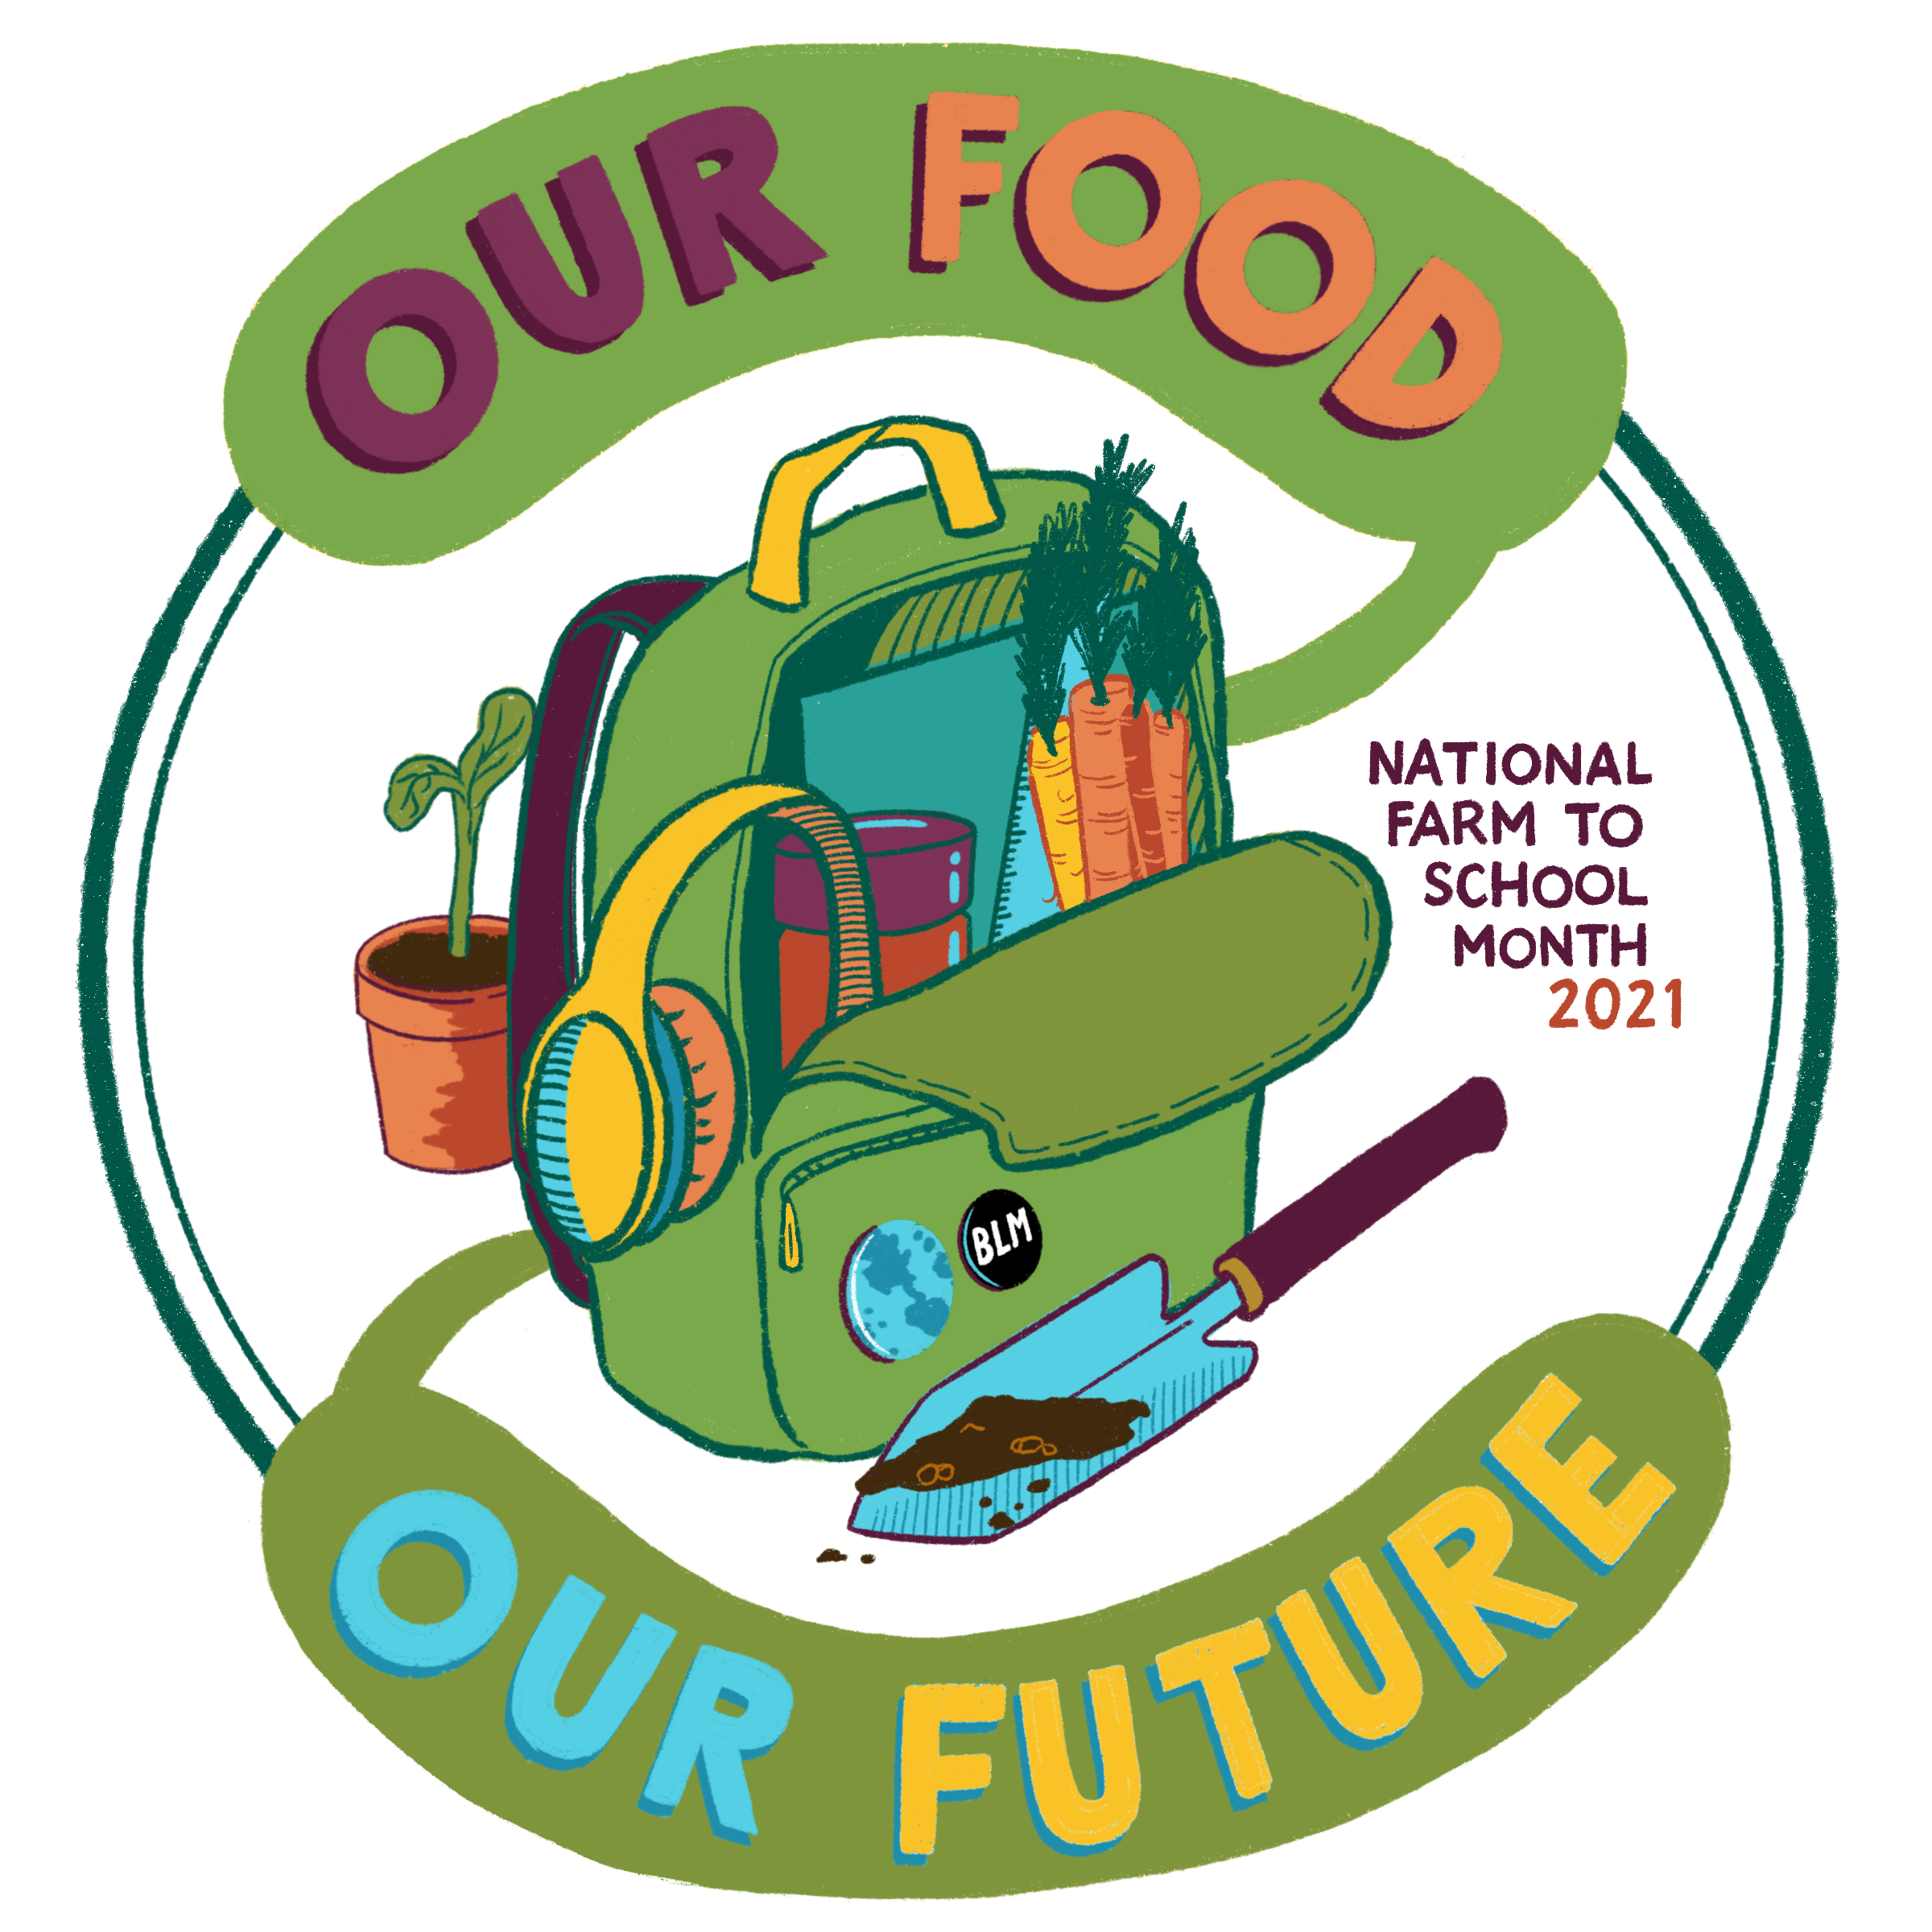 Our Food, Our Future National Farm to School Month 2021 logo